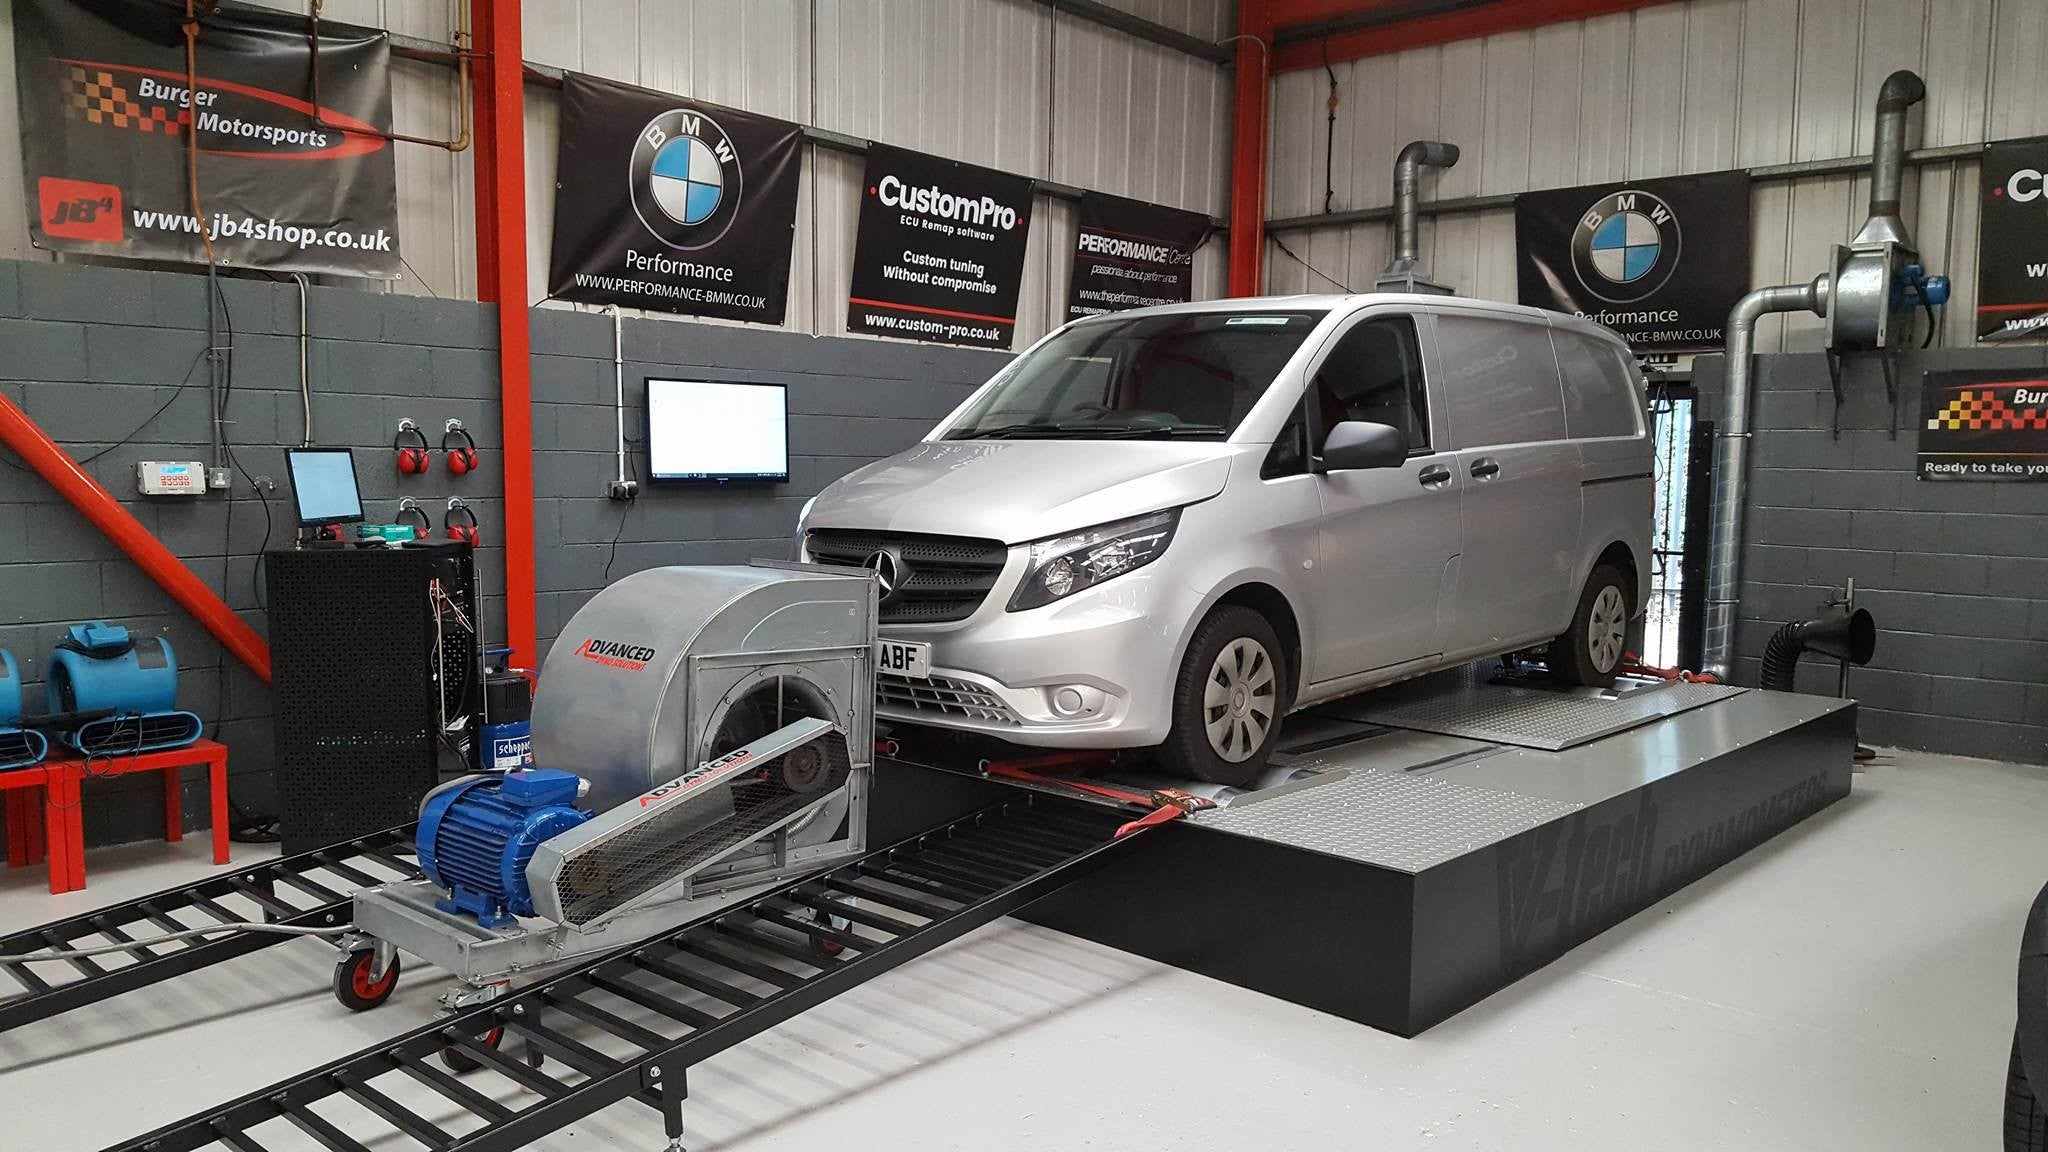 Mercedes Vito 114 CDI - CustomPro remap